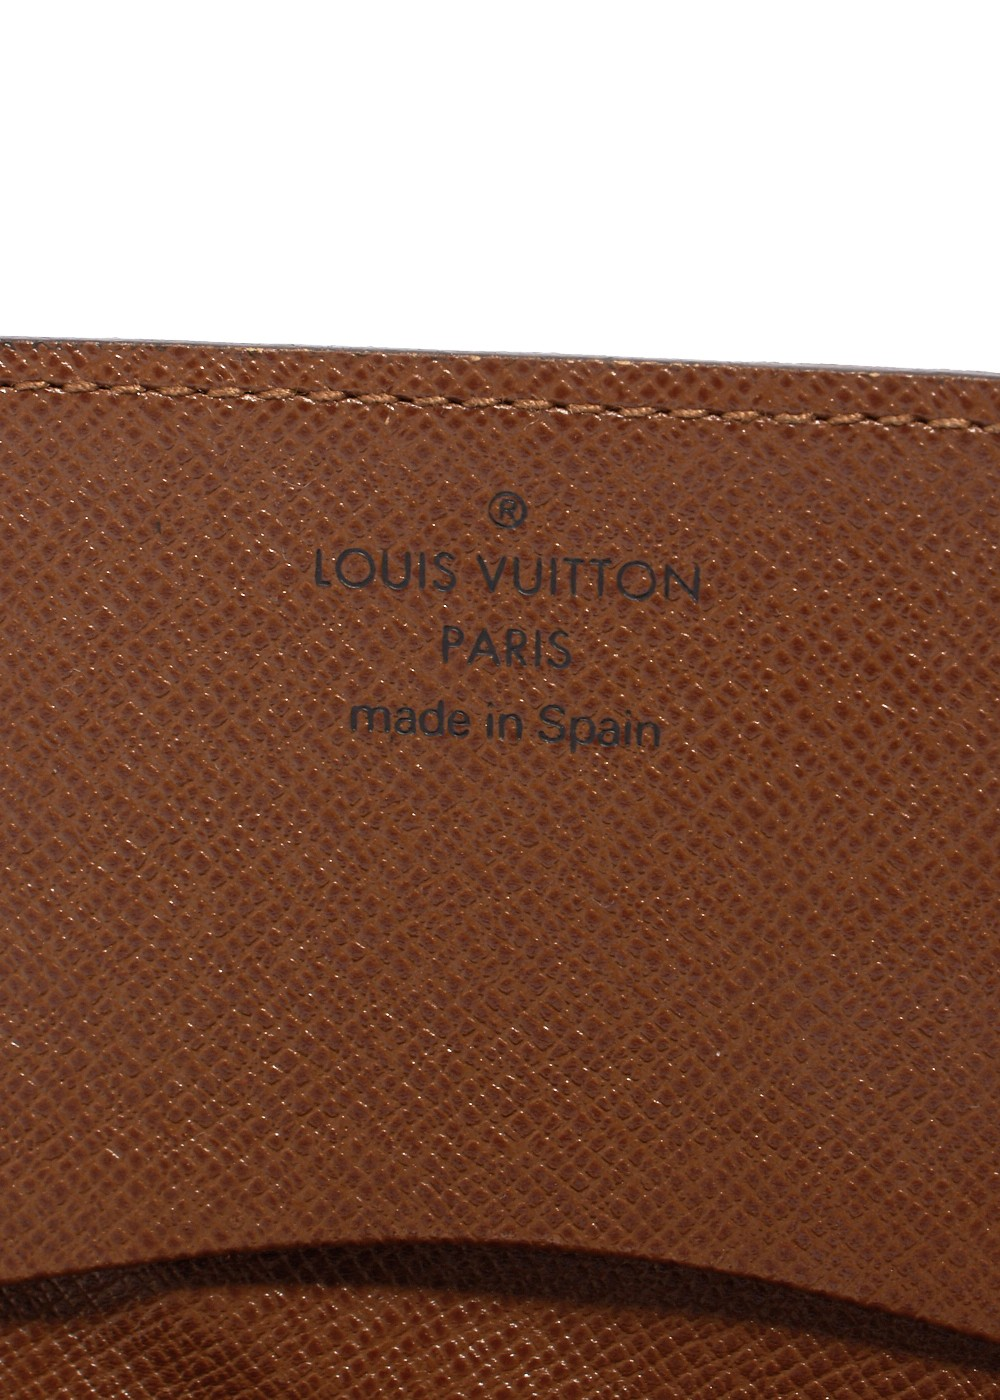 Louis Vuitton 名刺入れ|OTHER|名刺入れ|VINTAGE BRAND COLLECTION